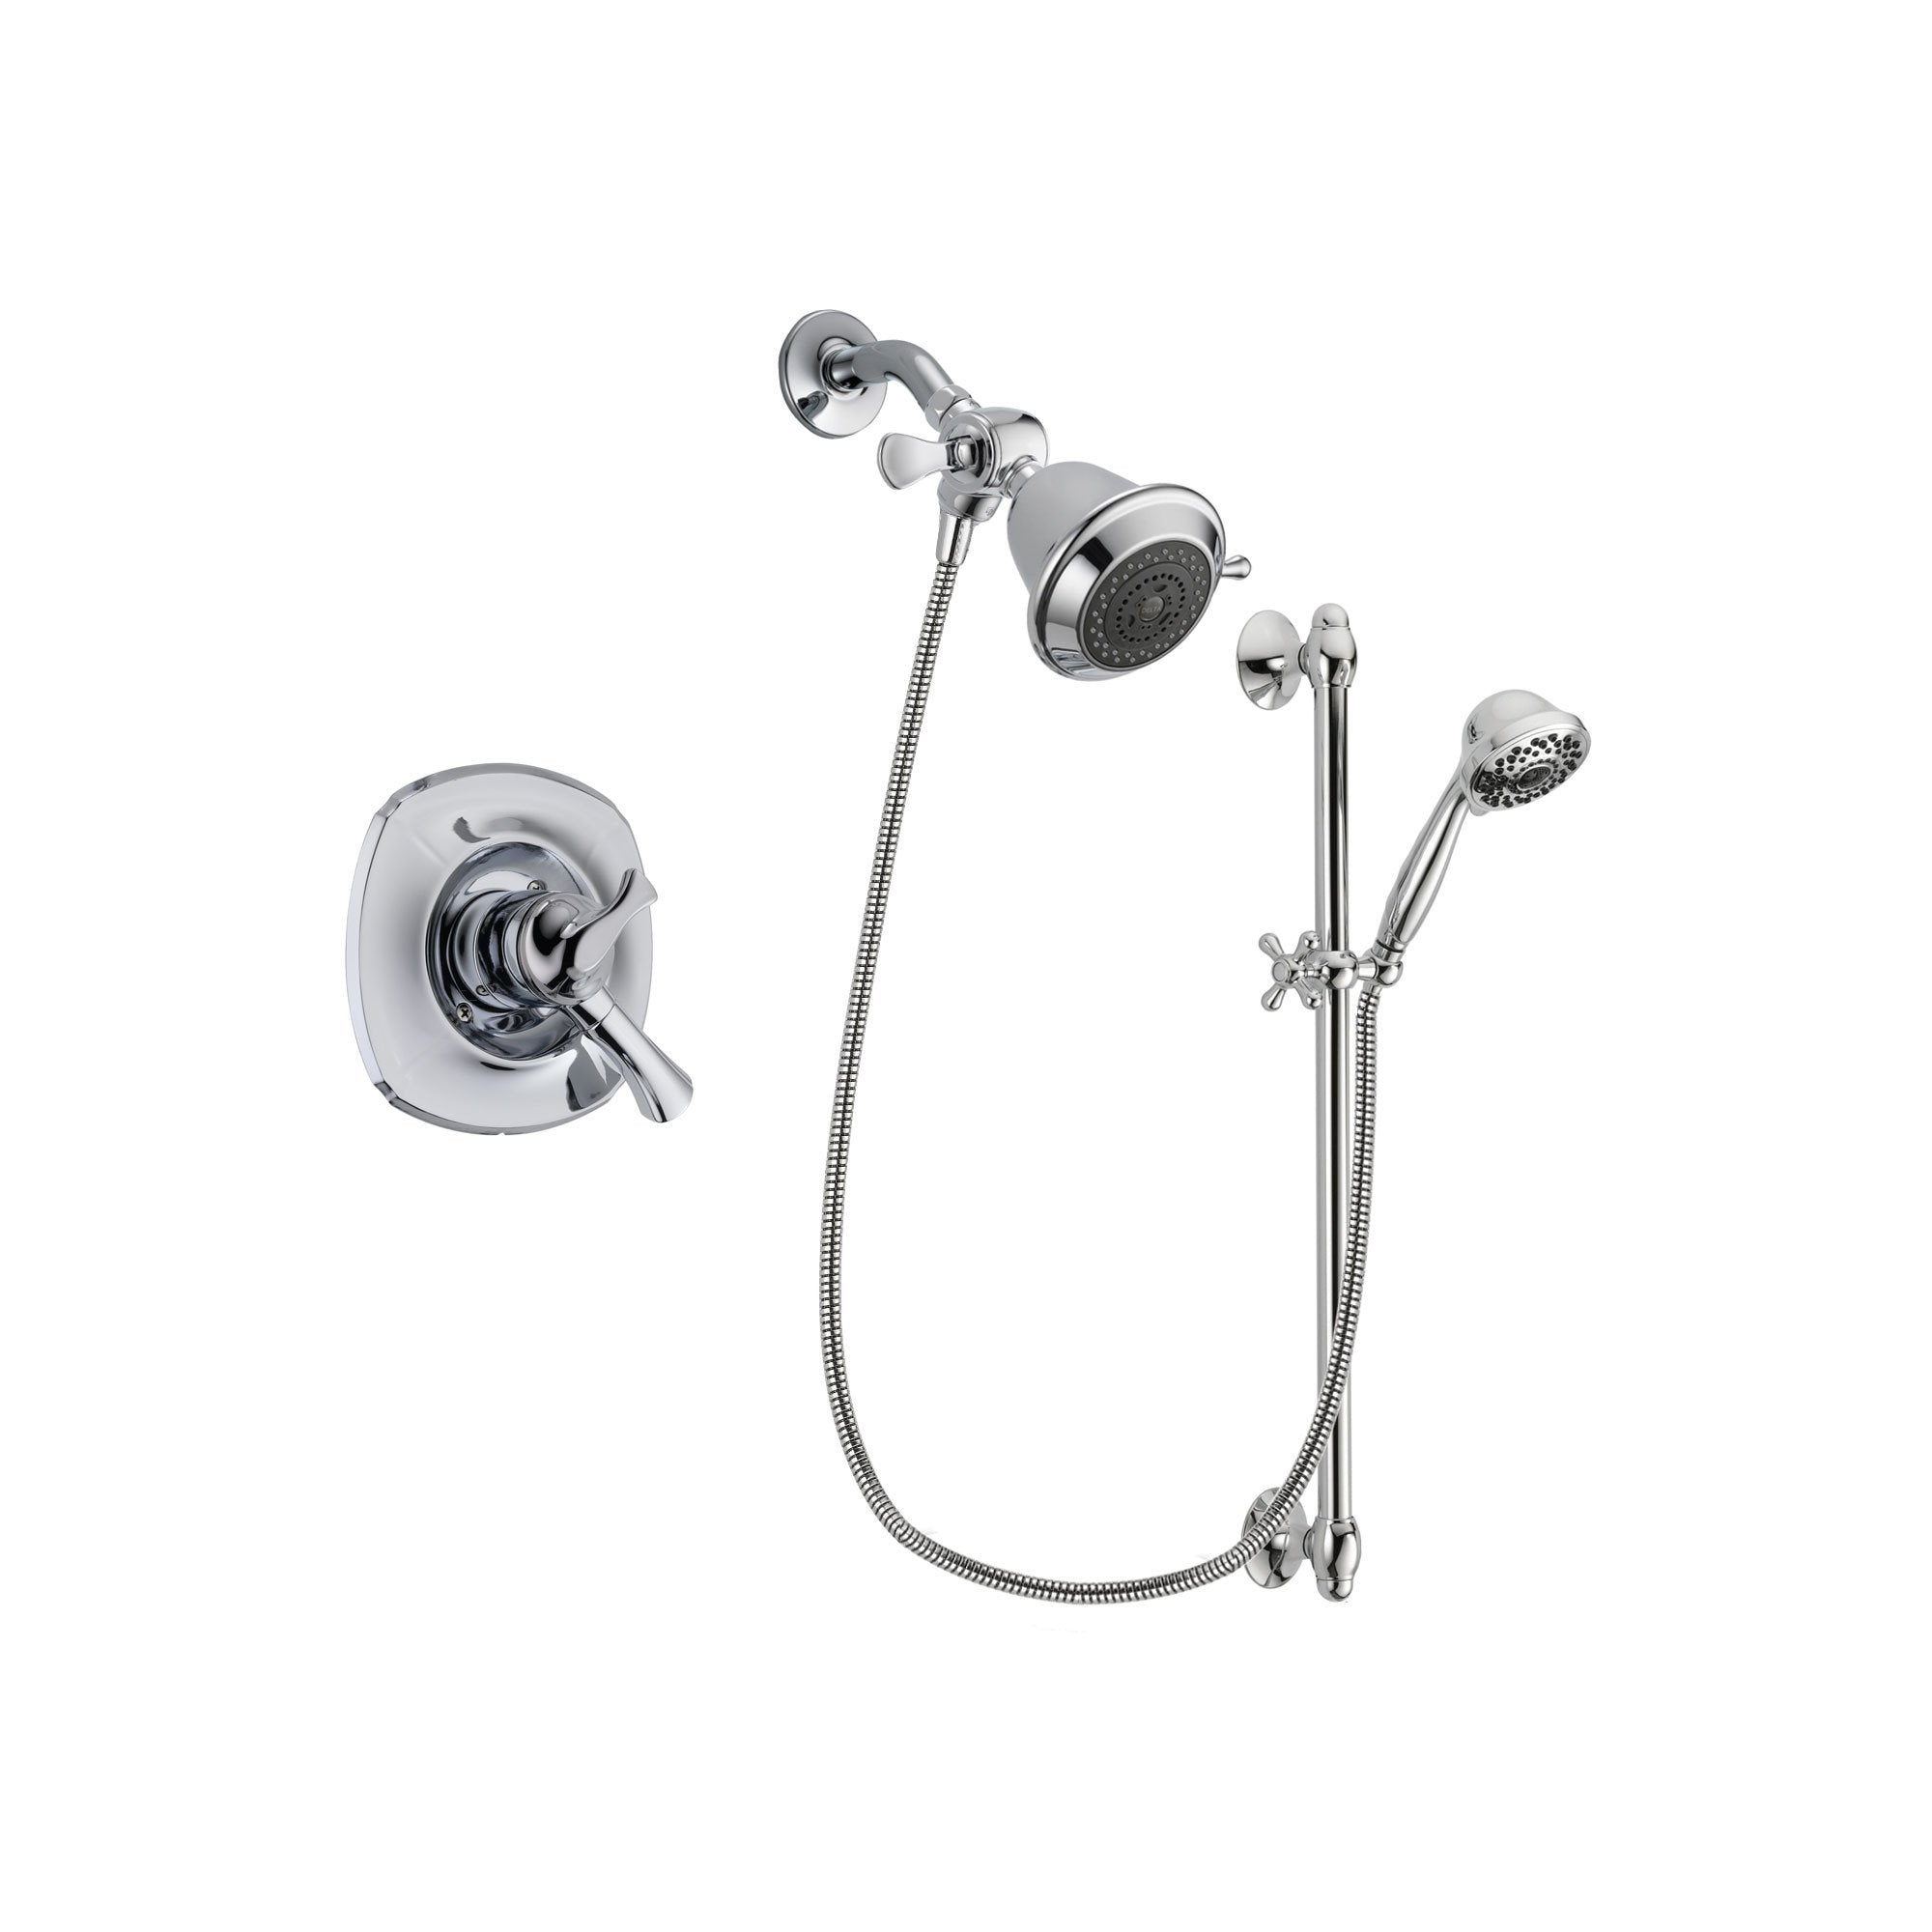 Delta Addison Chrome Shower Faucet System w/ Showerhead and Hand Shower DSP0590V